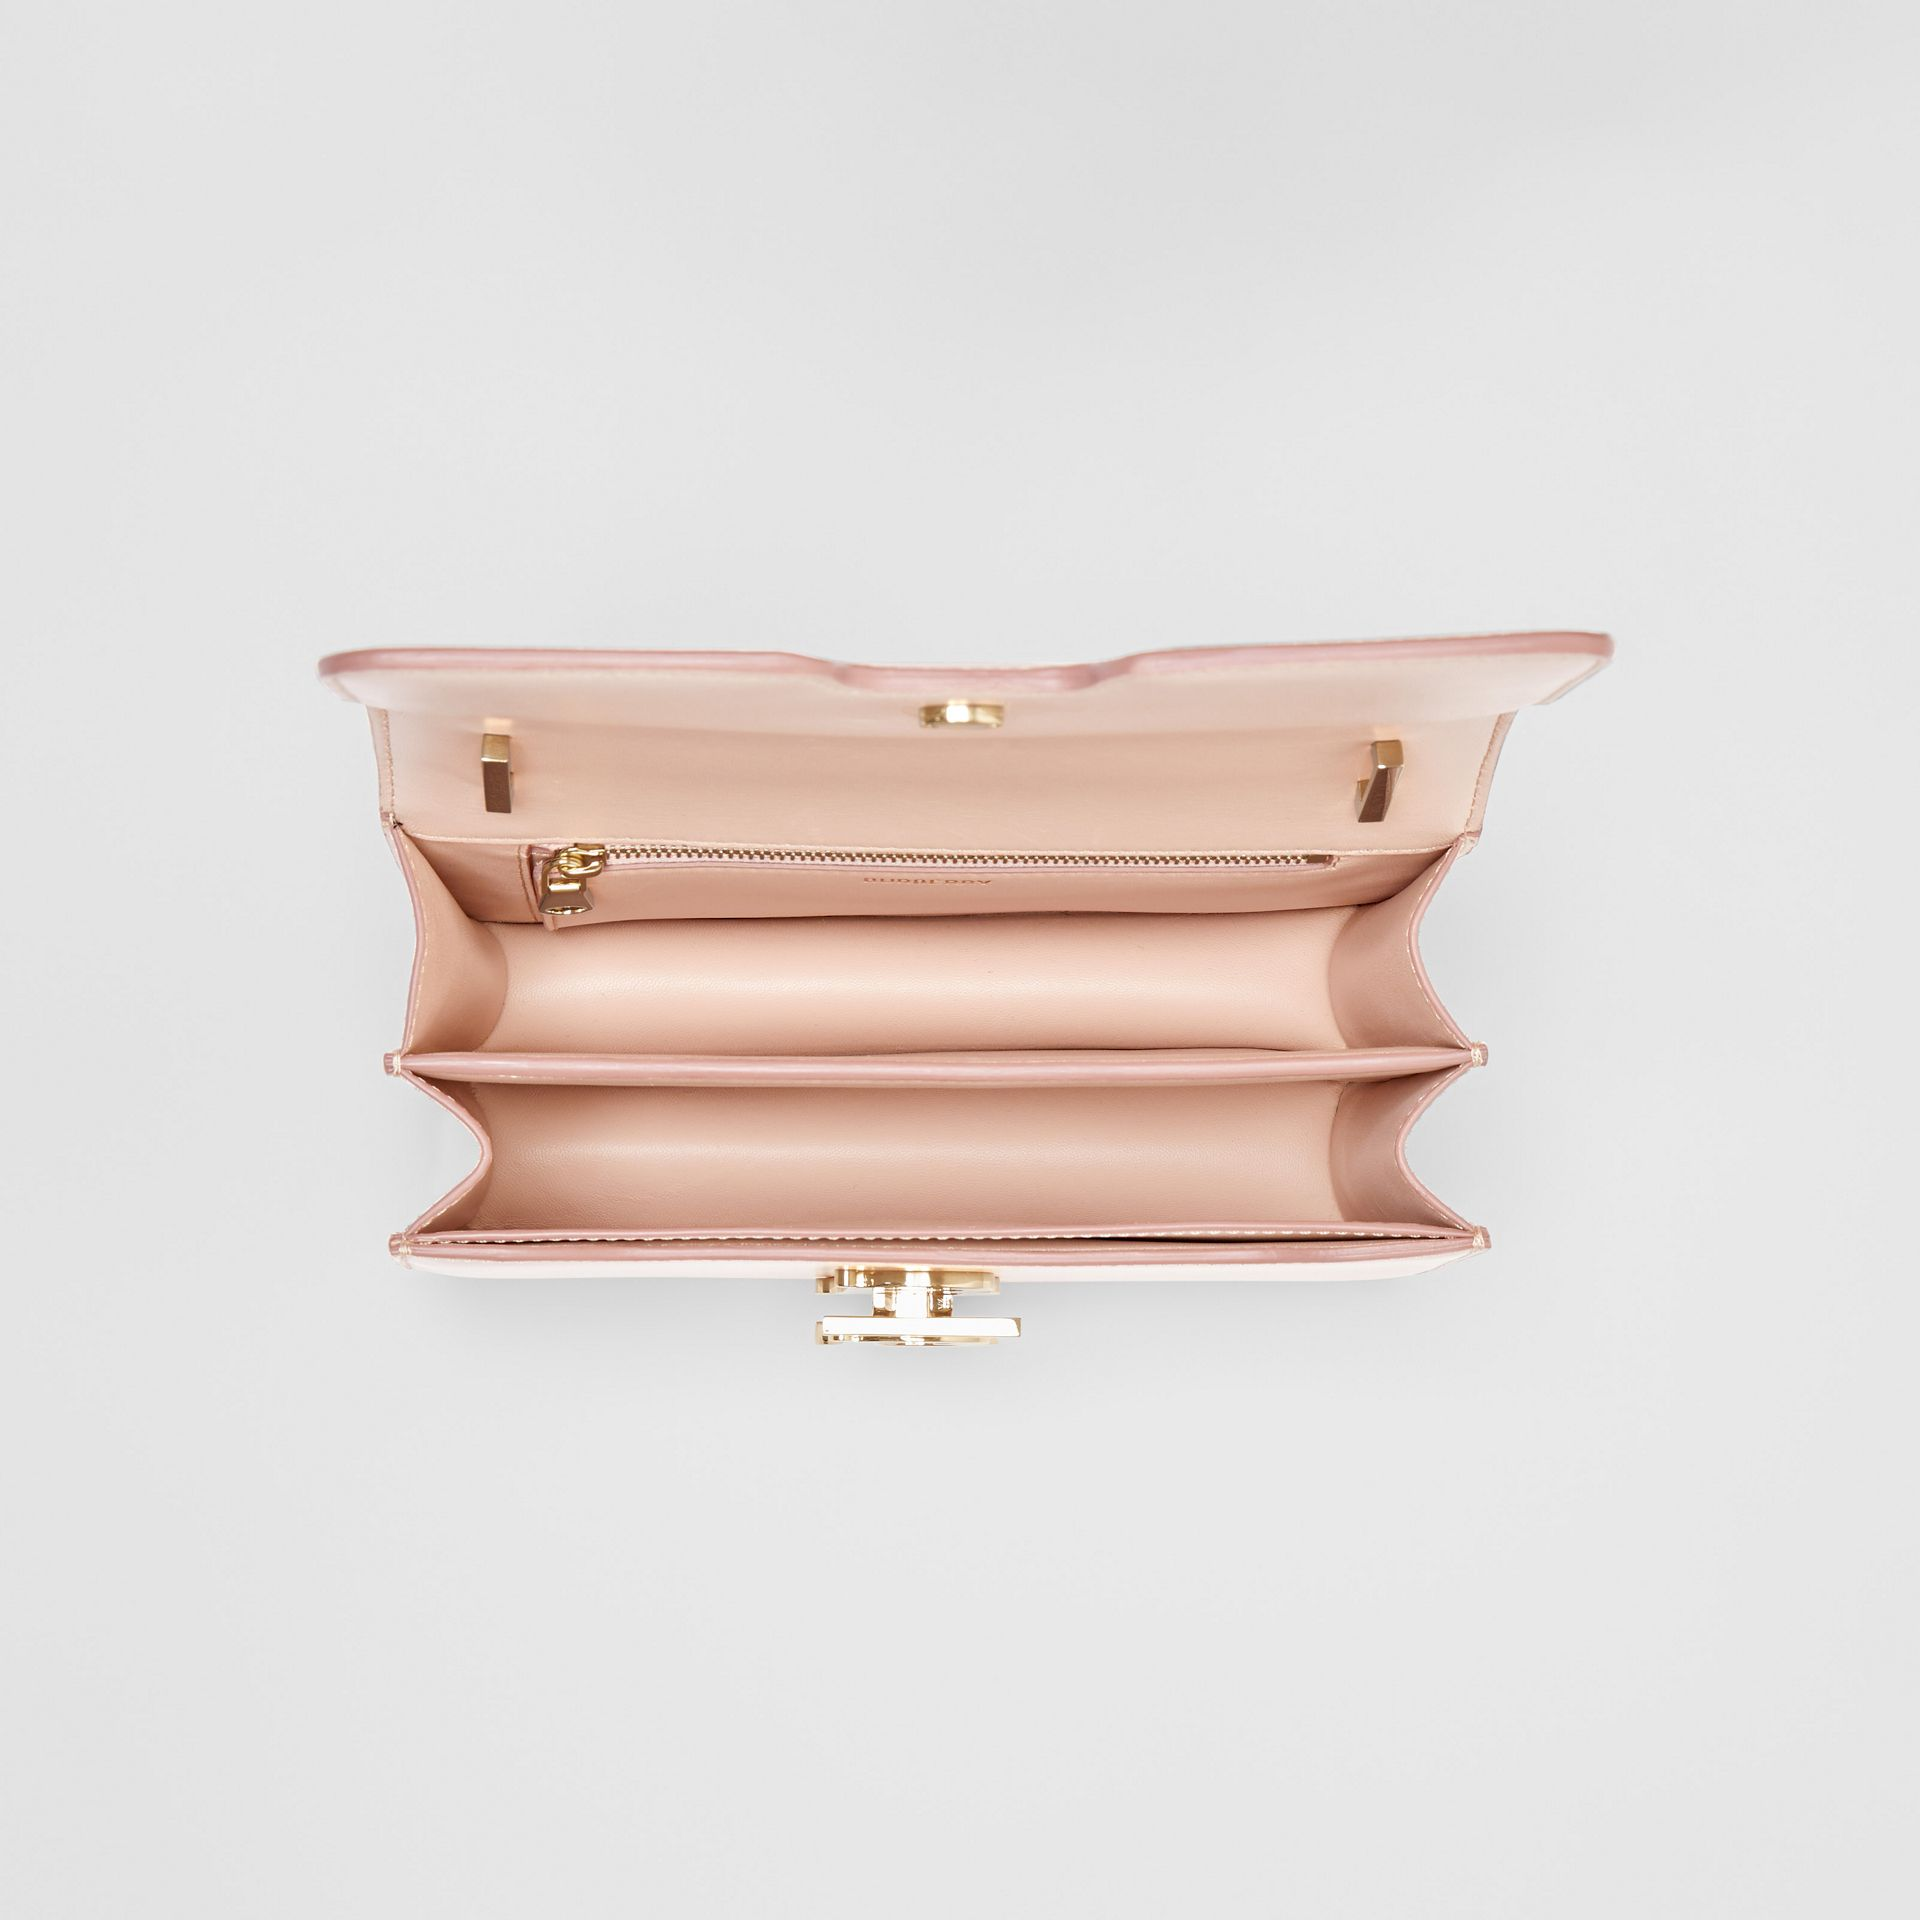 Petit sac TB en cuir (Beige Rose) - Femme | Burberry - photo de la galerie 4